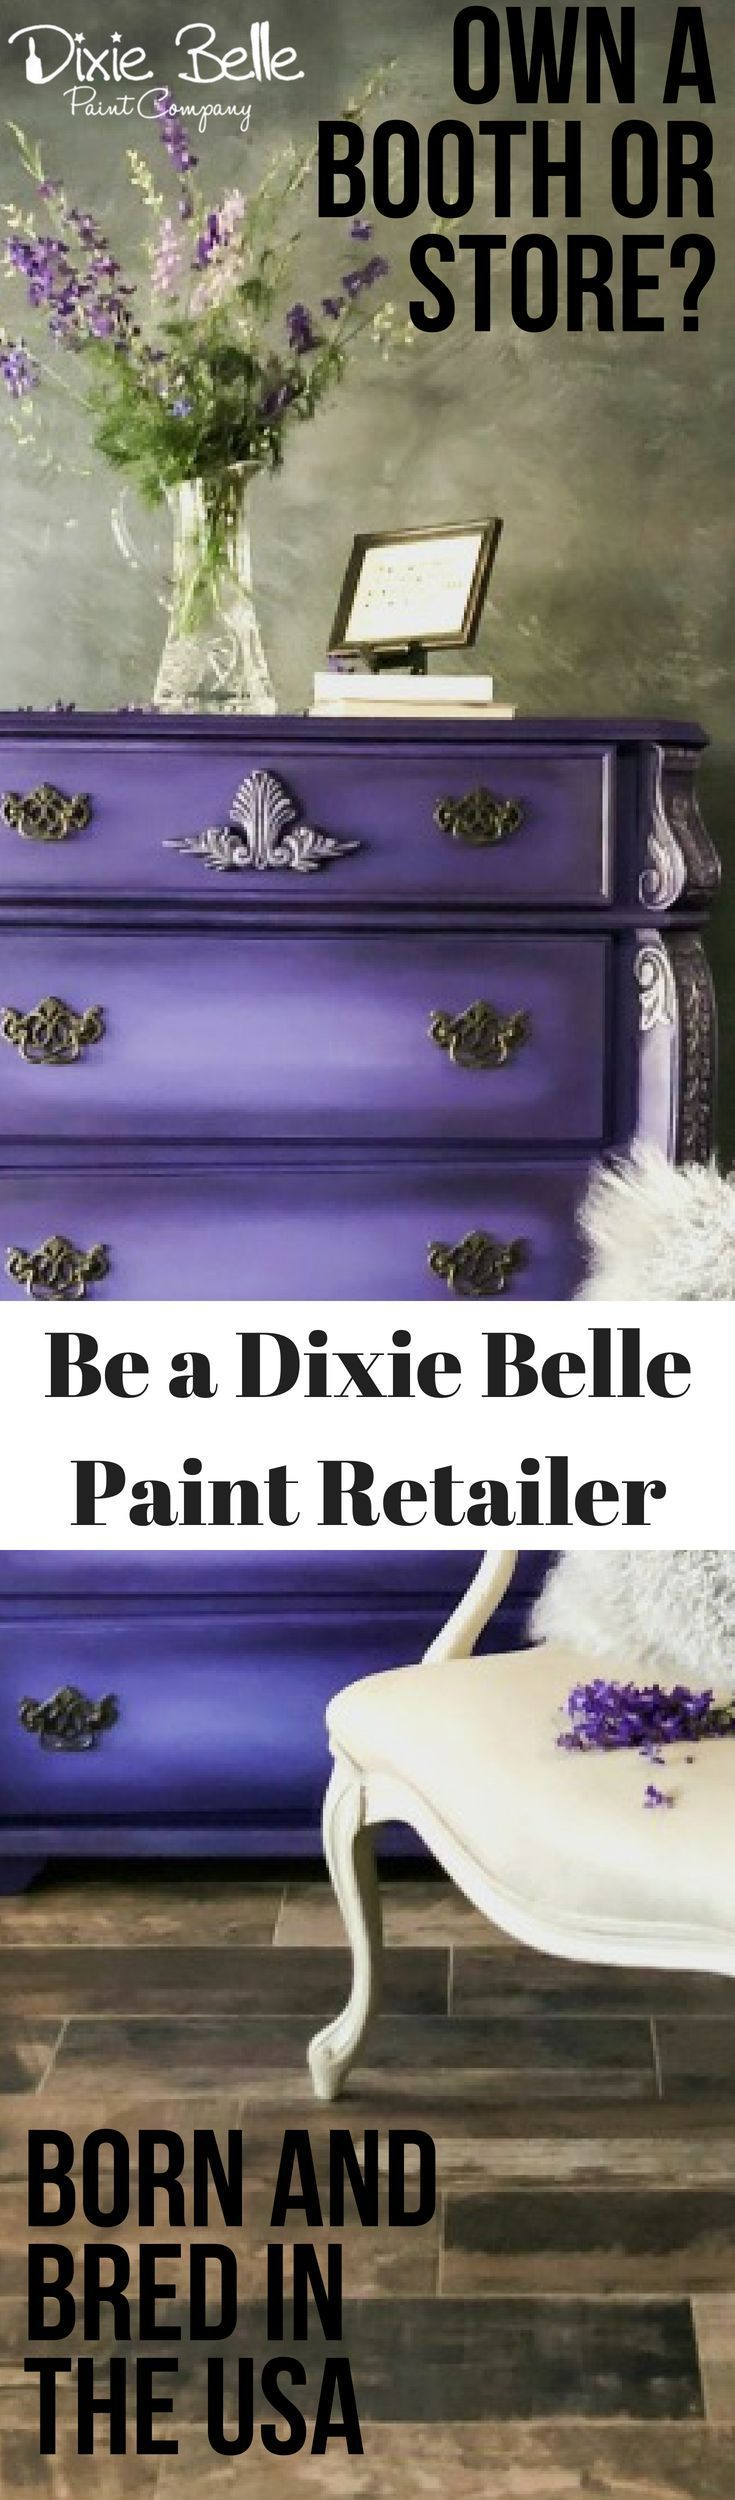 If You Own A Store Or Booth Contact Us Today You Will Join Over 1 300 Dixie Belle Paint Retailers Gorgeous Furniture Painted Furniture Painting Furniture Diy